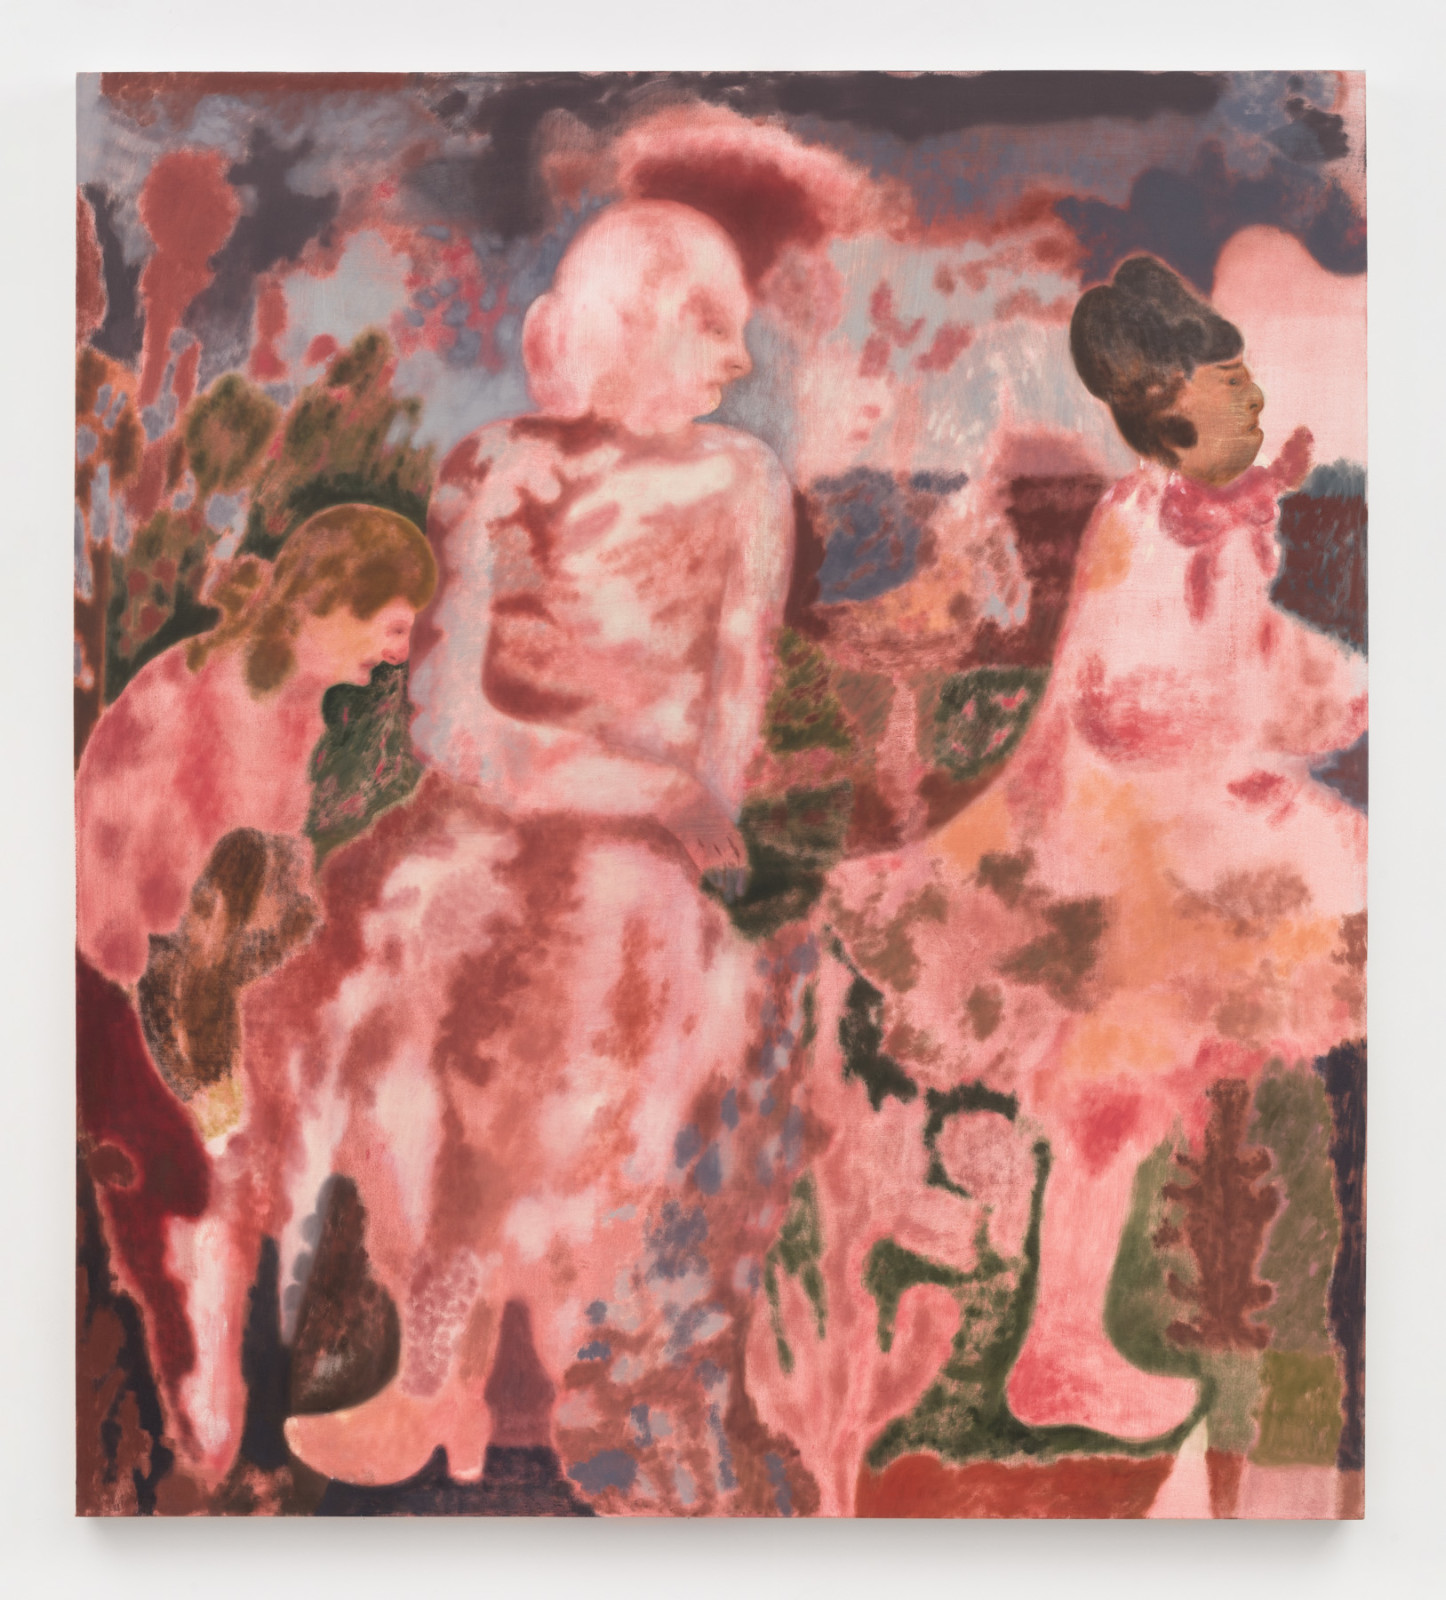 """<div class=""""artist""""><strong>Maja Ruznic</strong></div> <div class=""""title""""><em>The Mother and Her Poets</em>, 2018</div> <div class=""""medium"""">Oil on canvas</div> <div class=""""dimensions"""">203.2 x 180.3 cm<br /> 80 x 71 in</div>"""